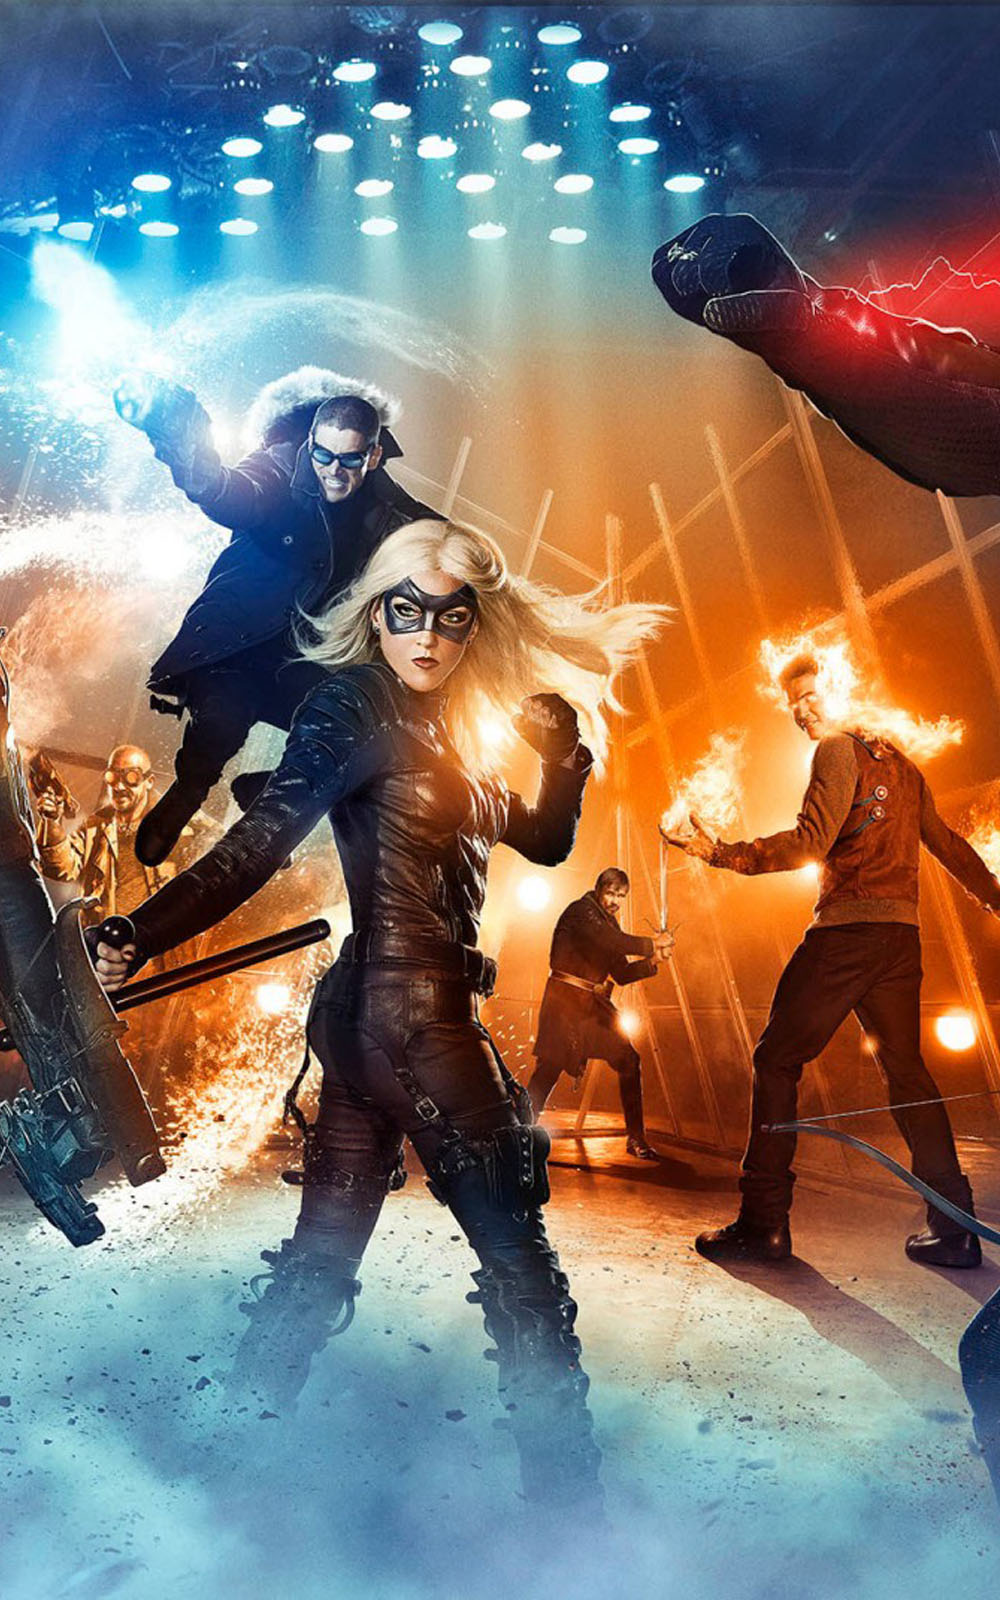 Cars Cover Dvd Art Wallpaper Legends Of Tomorrow Arrow Flash Download Free Hd Mobile